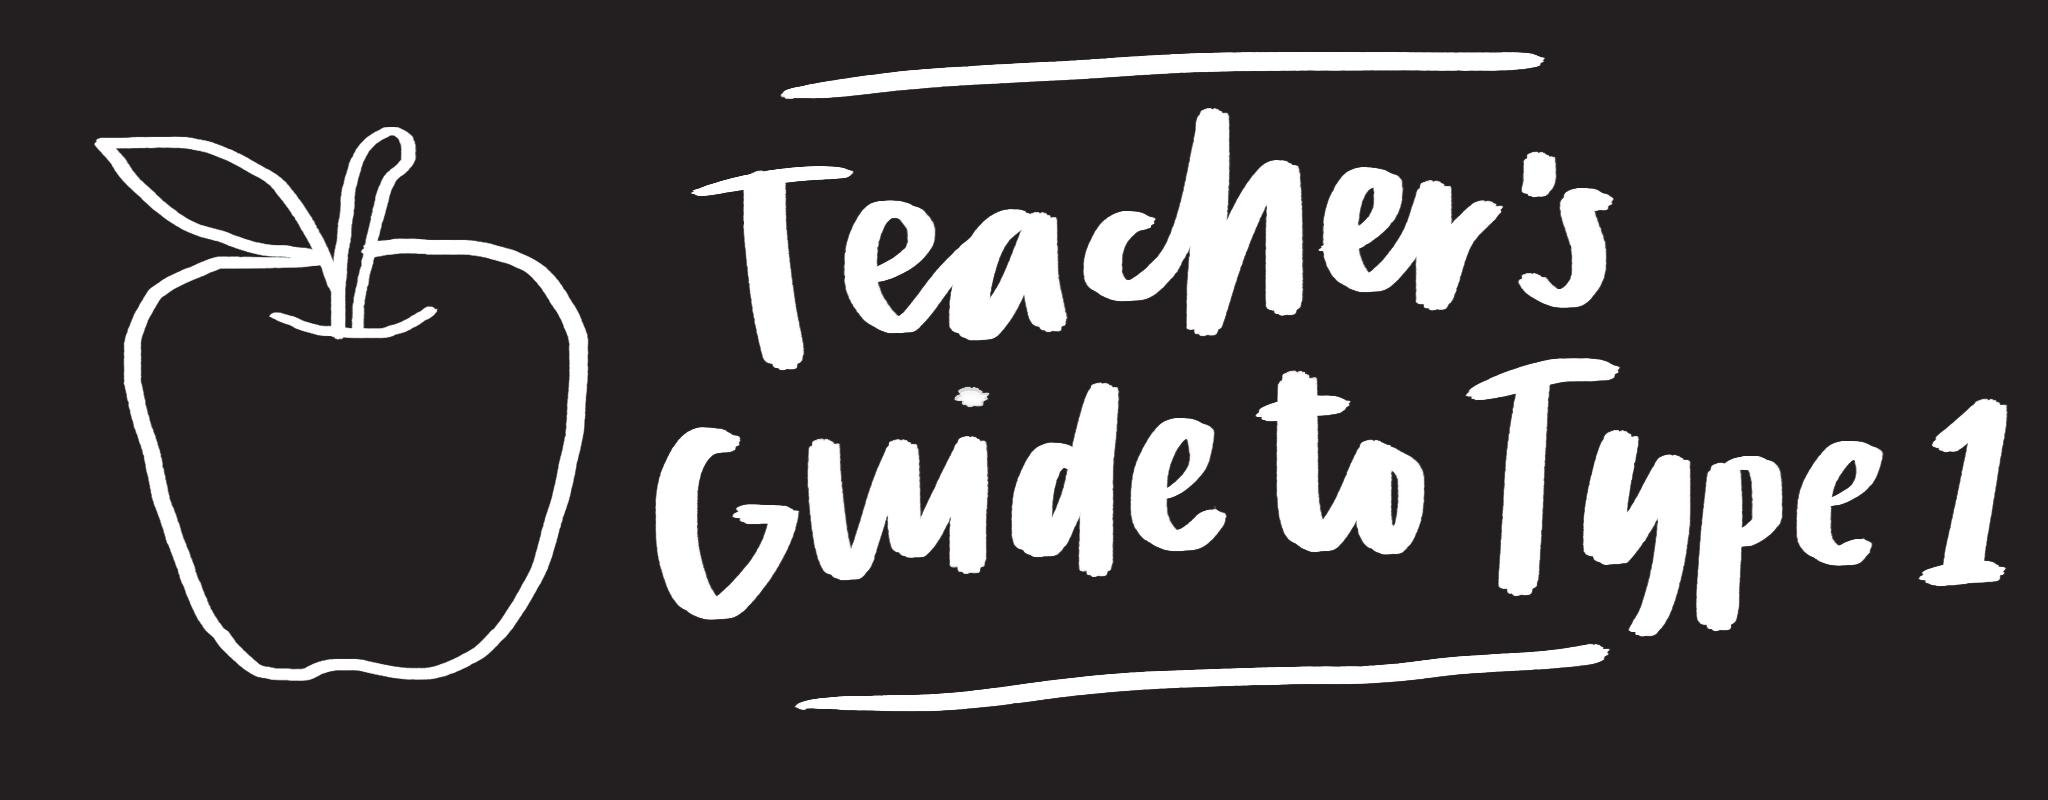 A Teacher's Guide to Kids with Type 1 Diabetes